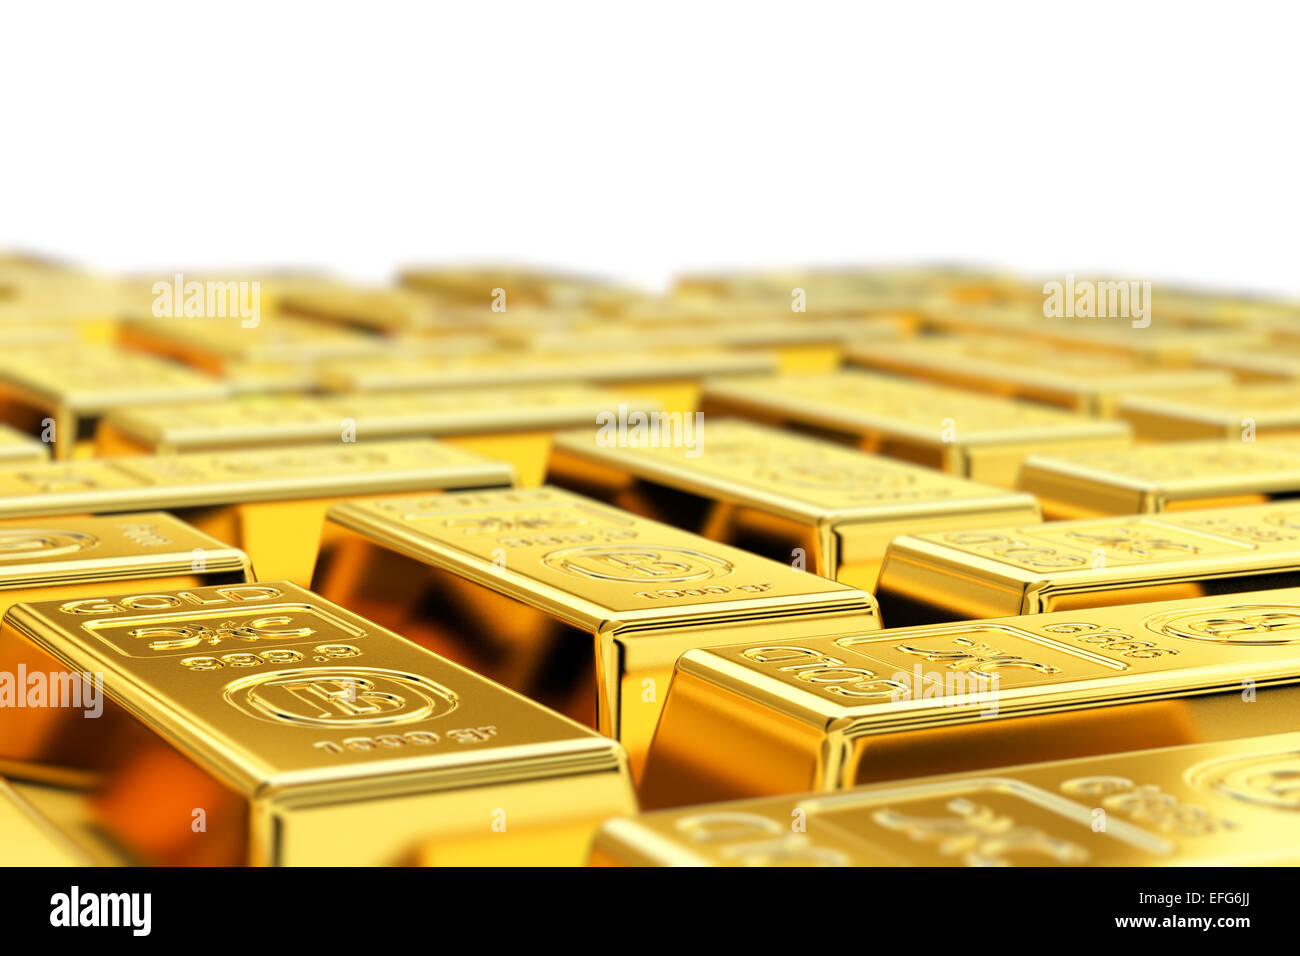 Many gold bars with shallow depth of field - Stock Image